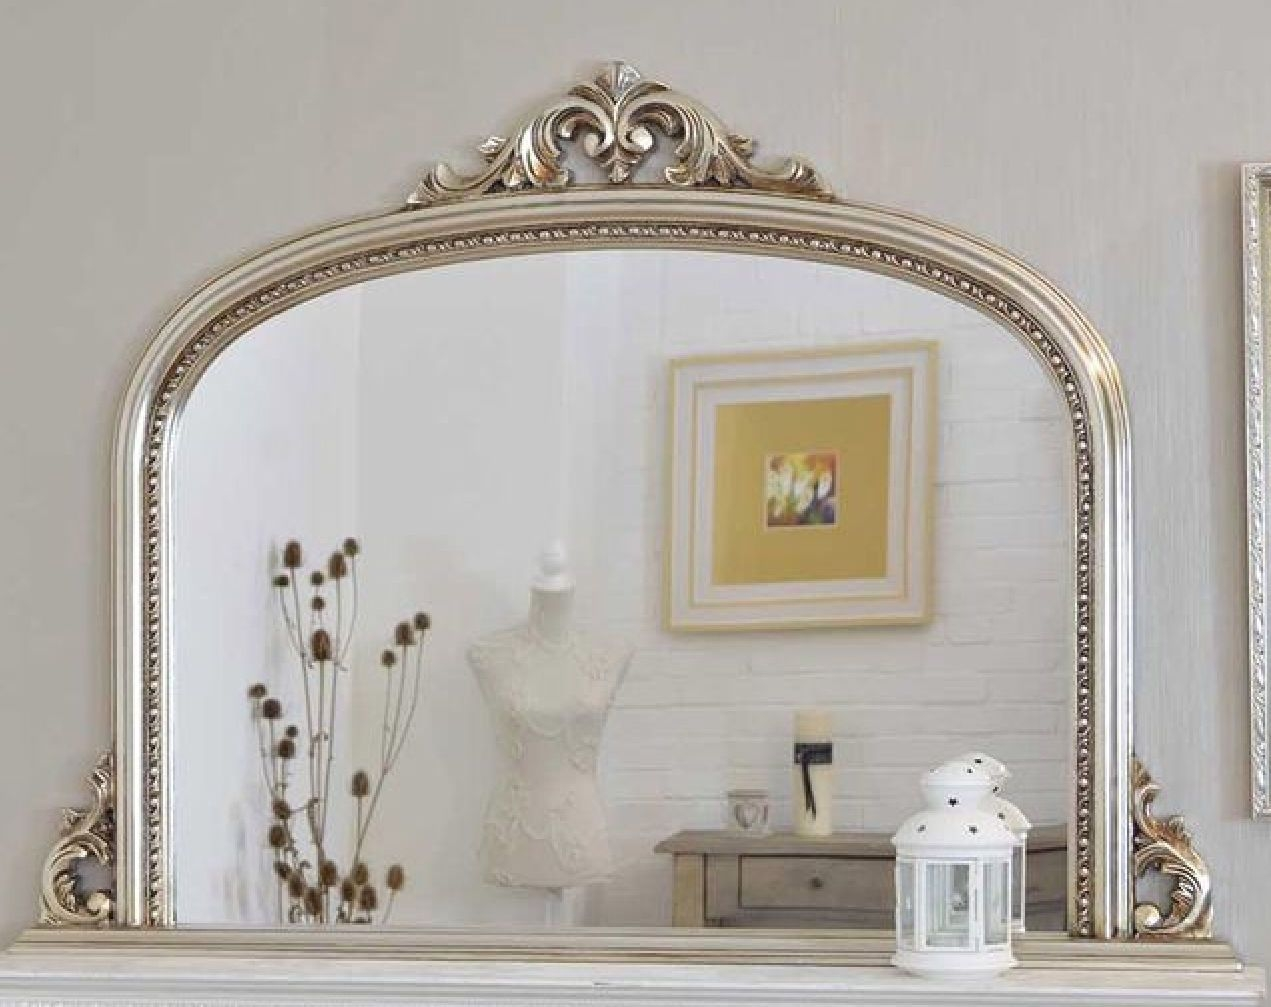 Silver Overmantle Mirror Mooie Zilveren Schouwspiegel Httpwww Throughout Overmantel Mirrors (Image 13 of 15)